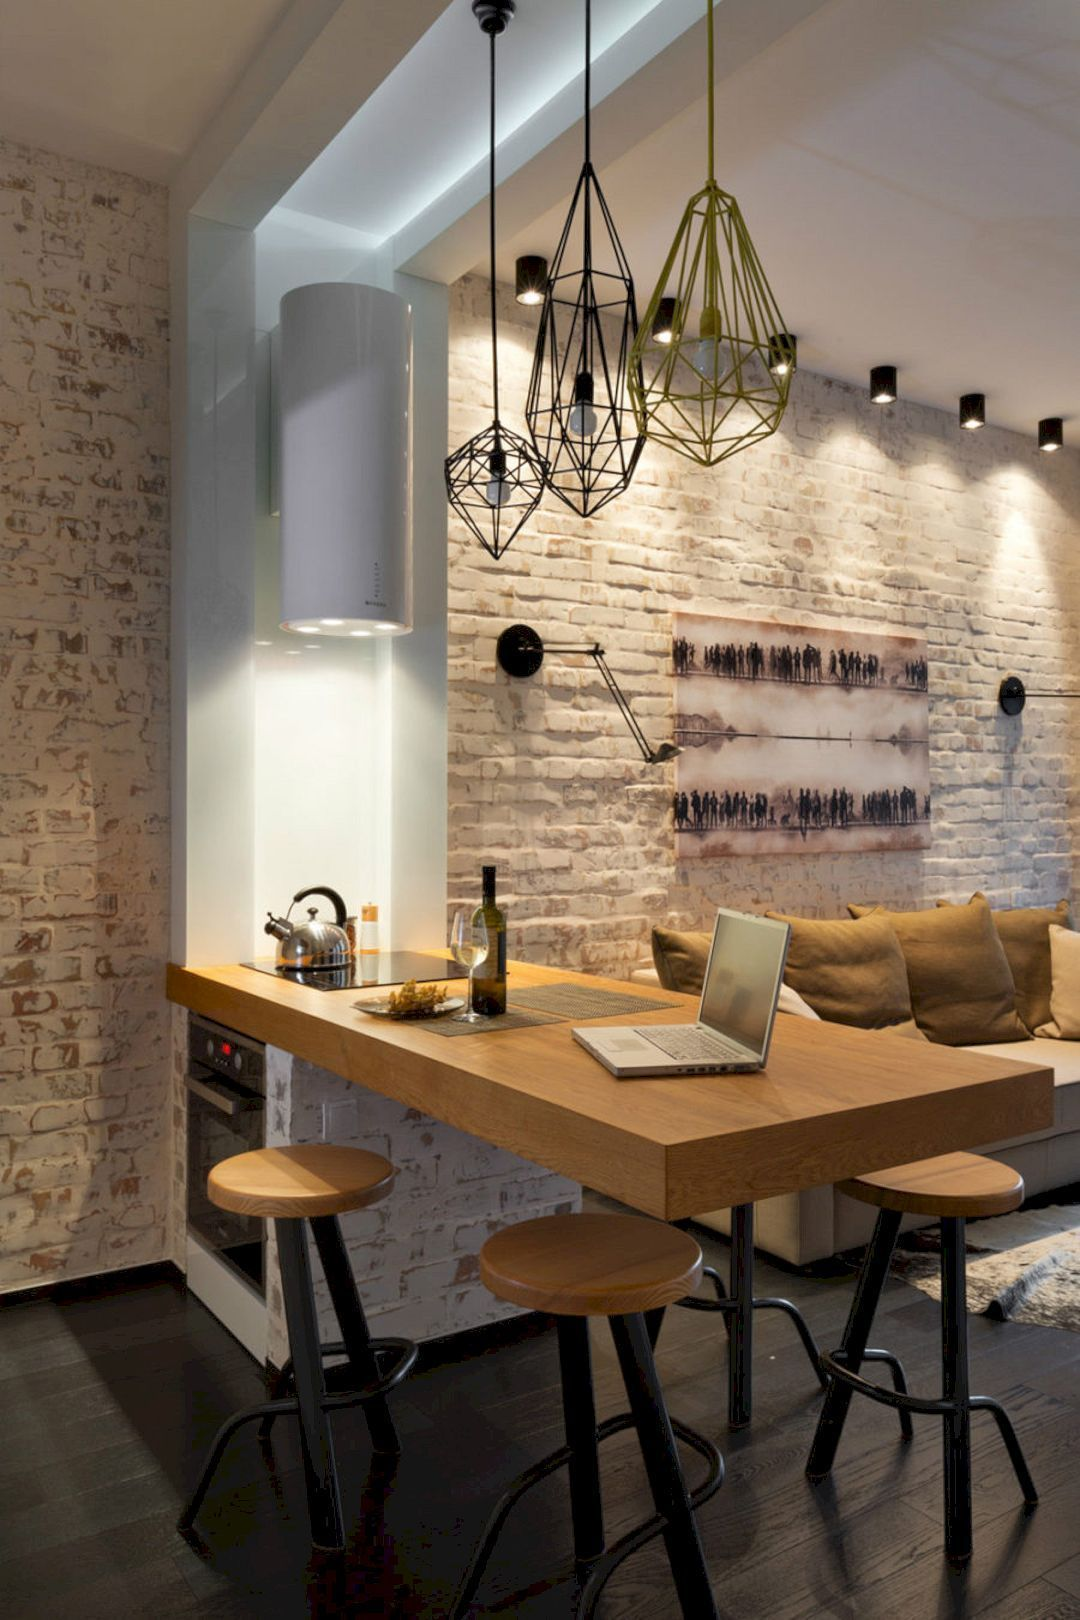 Top 10 Interior Design Tips For A Happy Home Interior Design